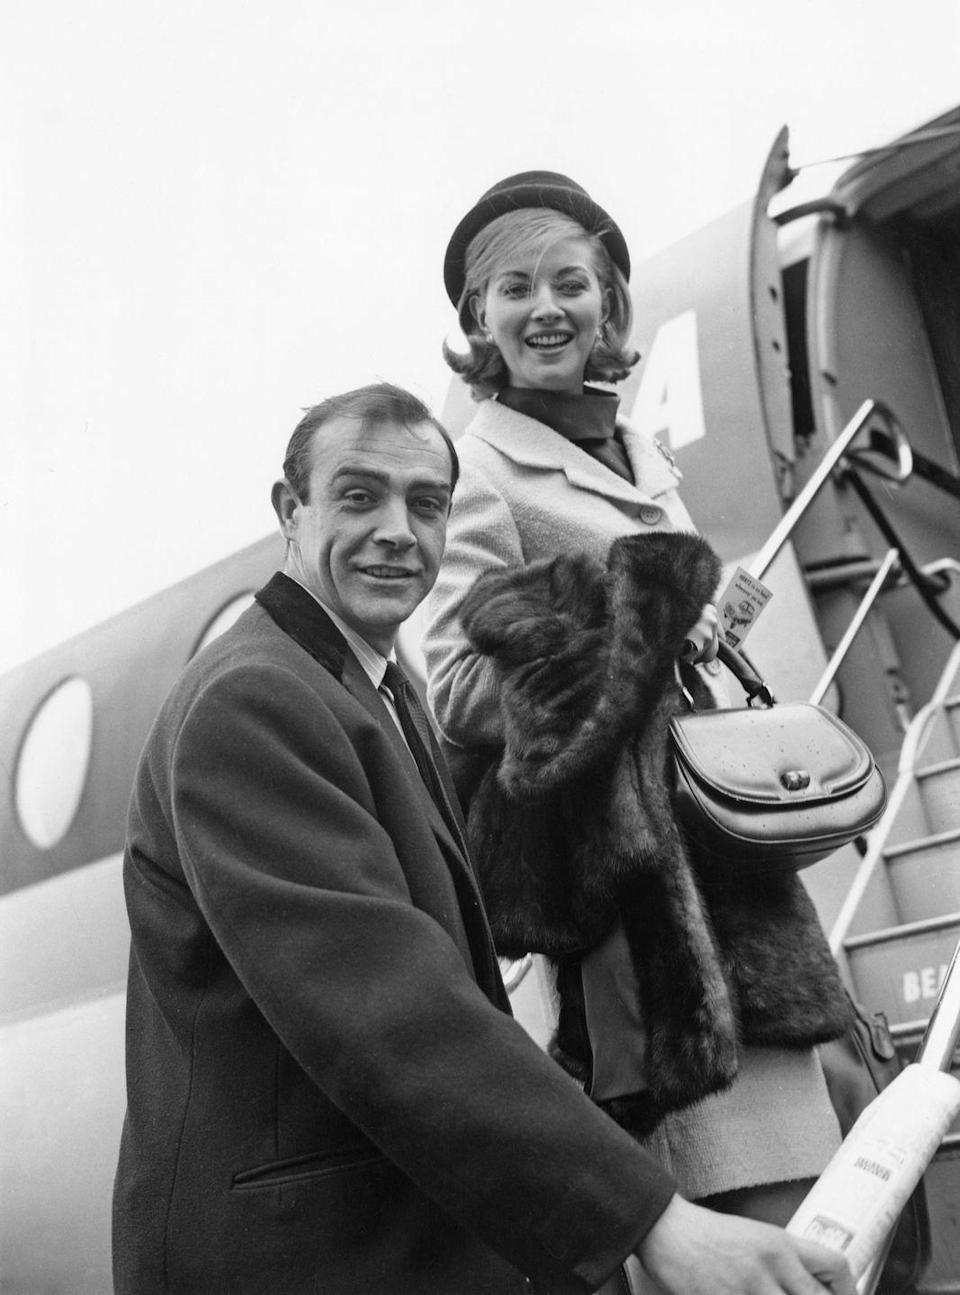 <p>Sean Connery and Daniela Bianchi leaving London for location filming in Istanbul to film 'From Russia With Love', 1963. </p>